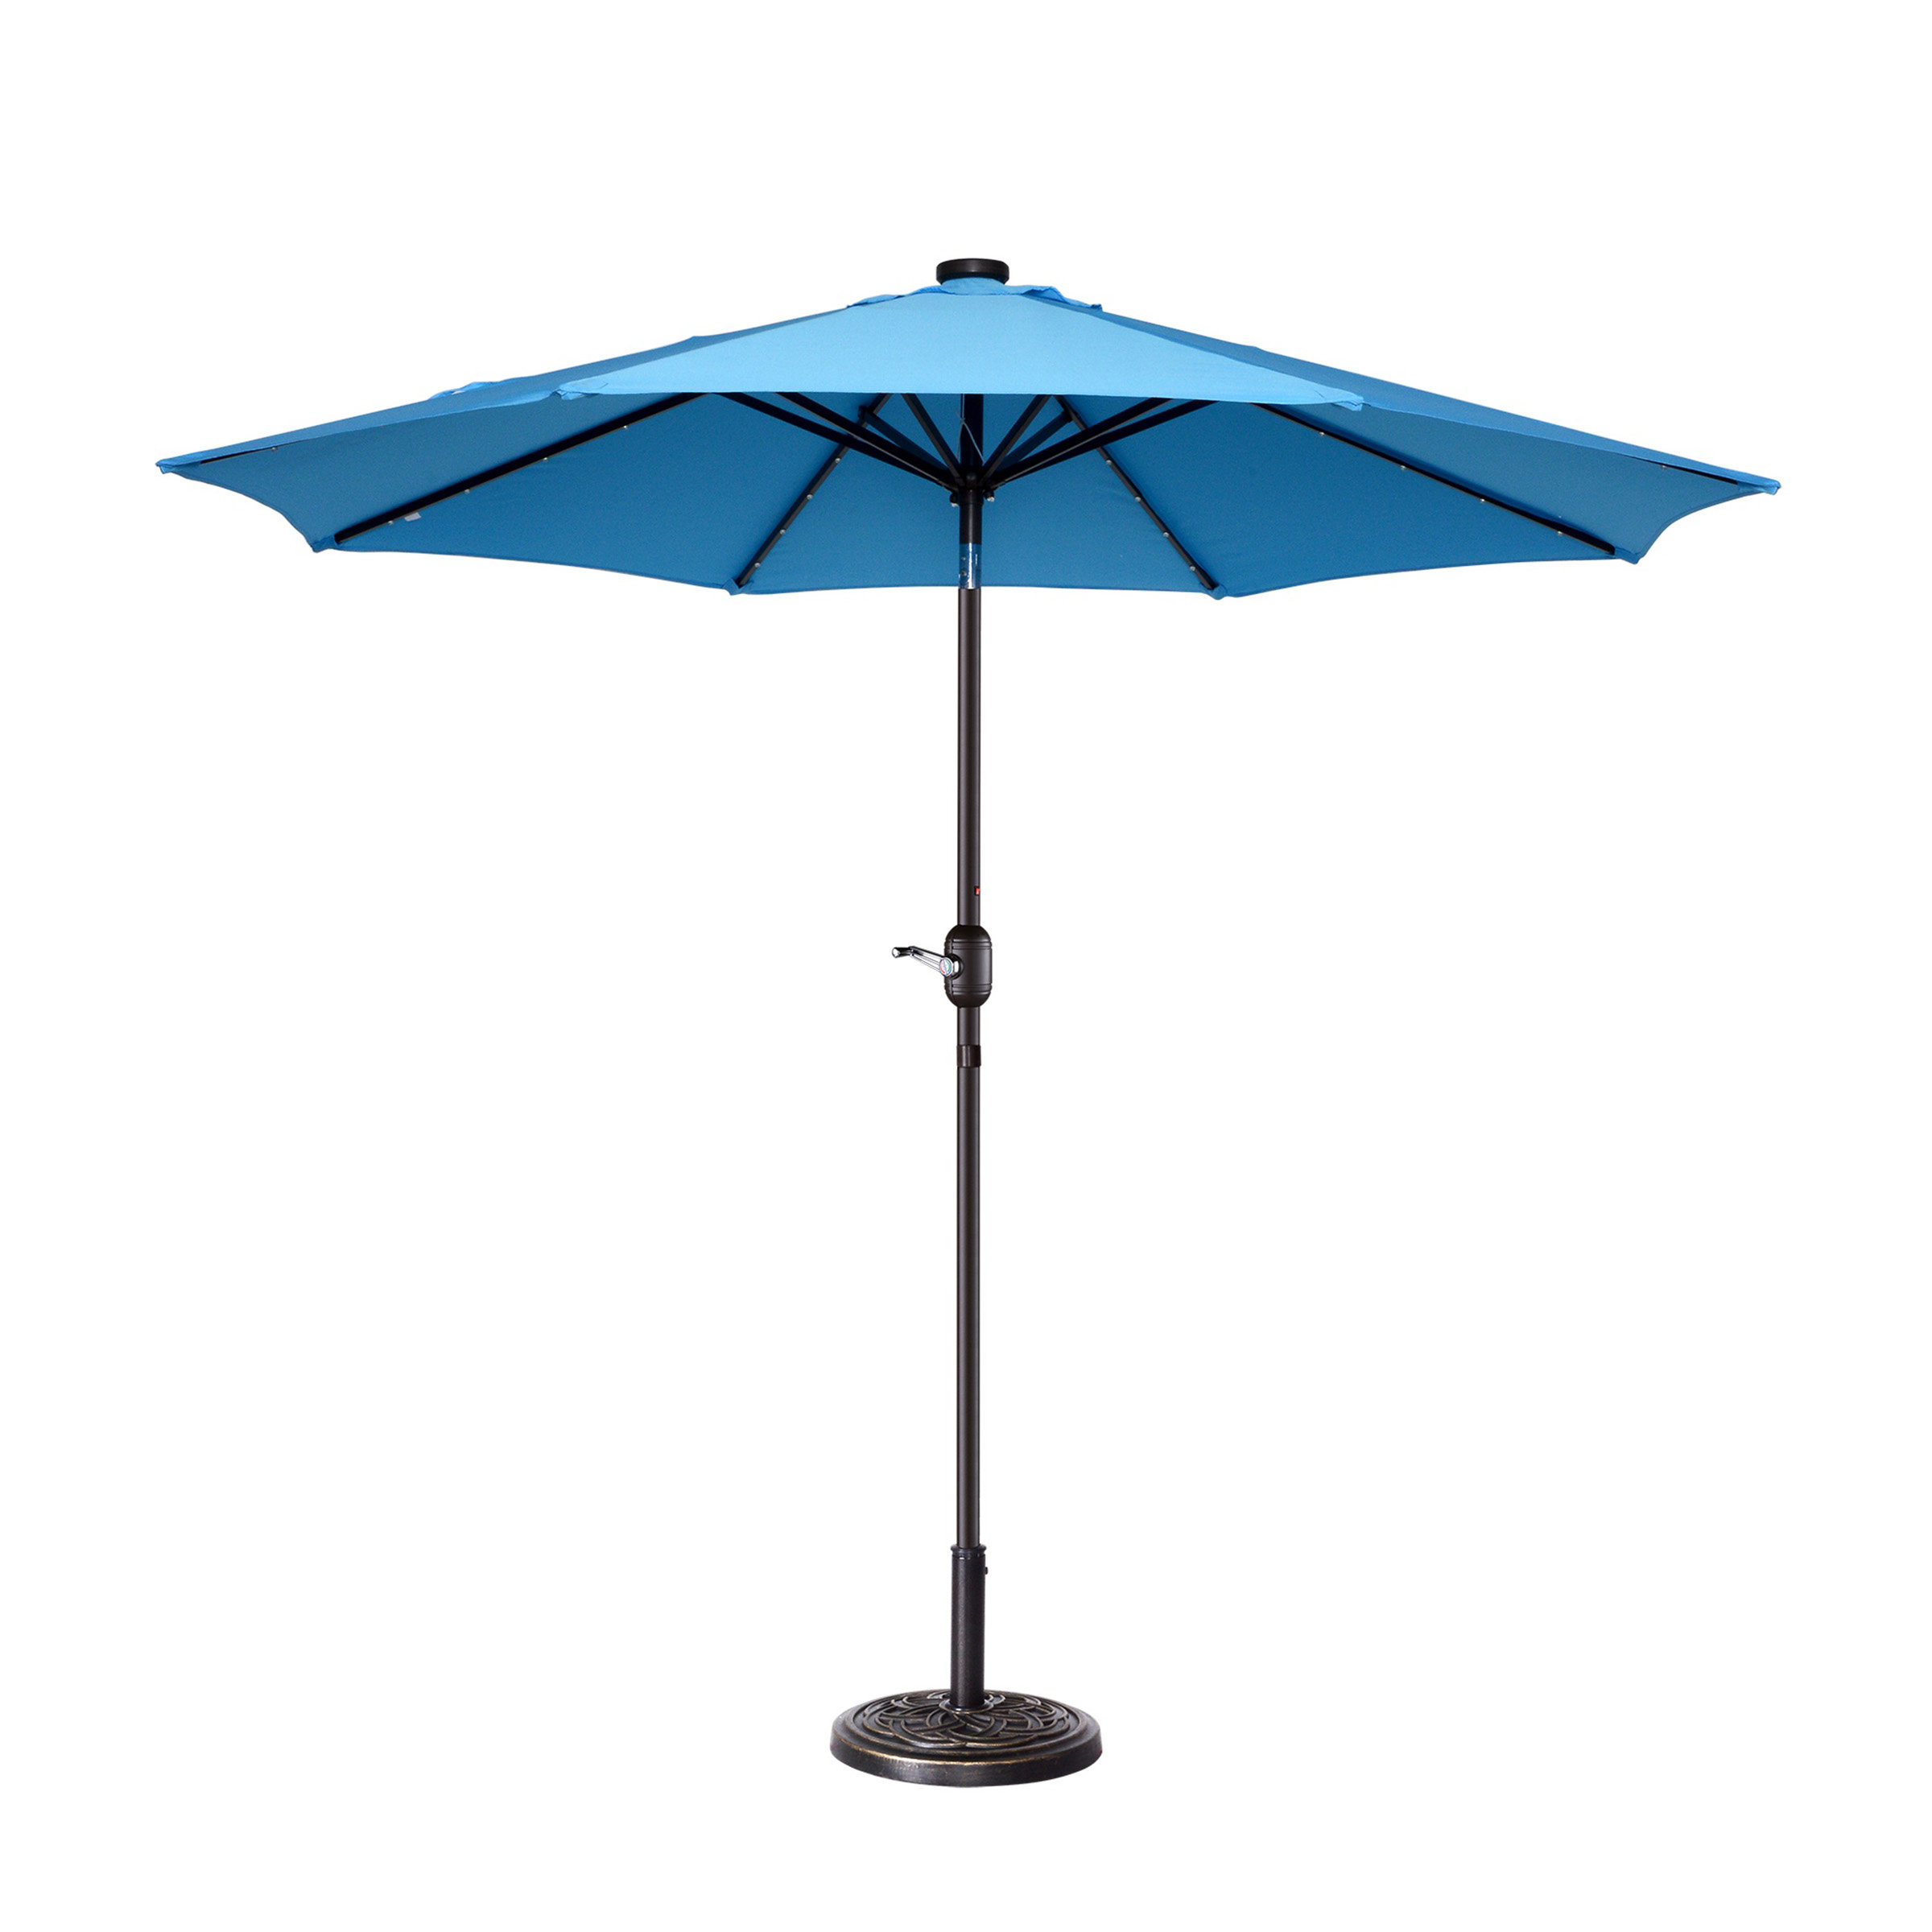 Preferred Harwich Market Umbrellas With Regard To Coggeshall Led Lighted 9' Market Umbrella (View 6 of 20)